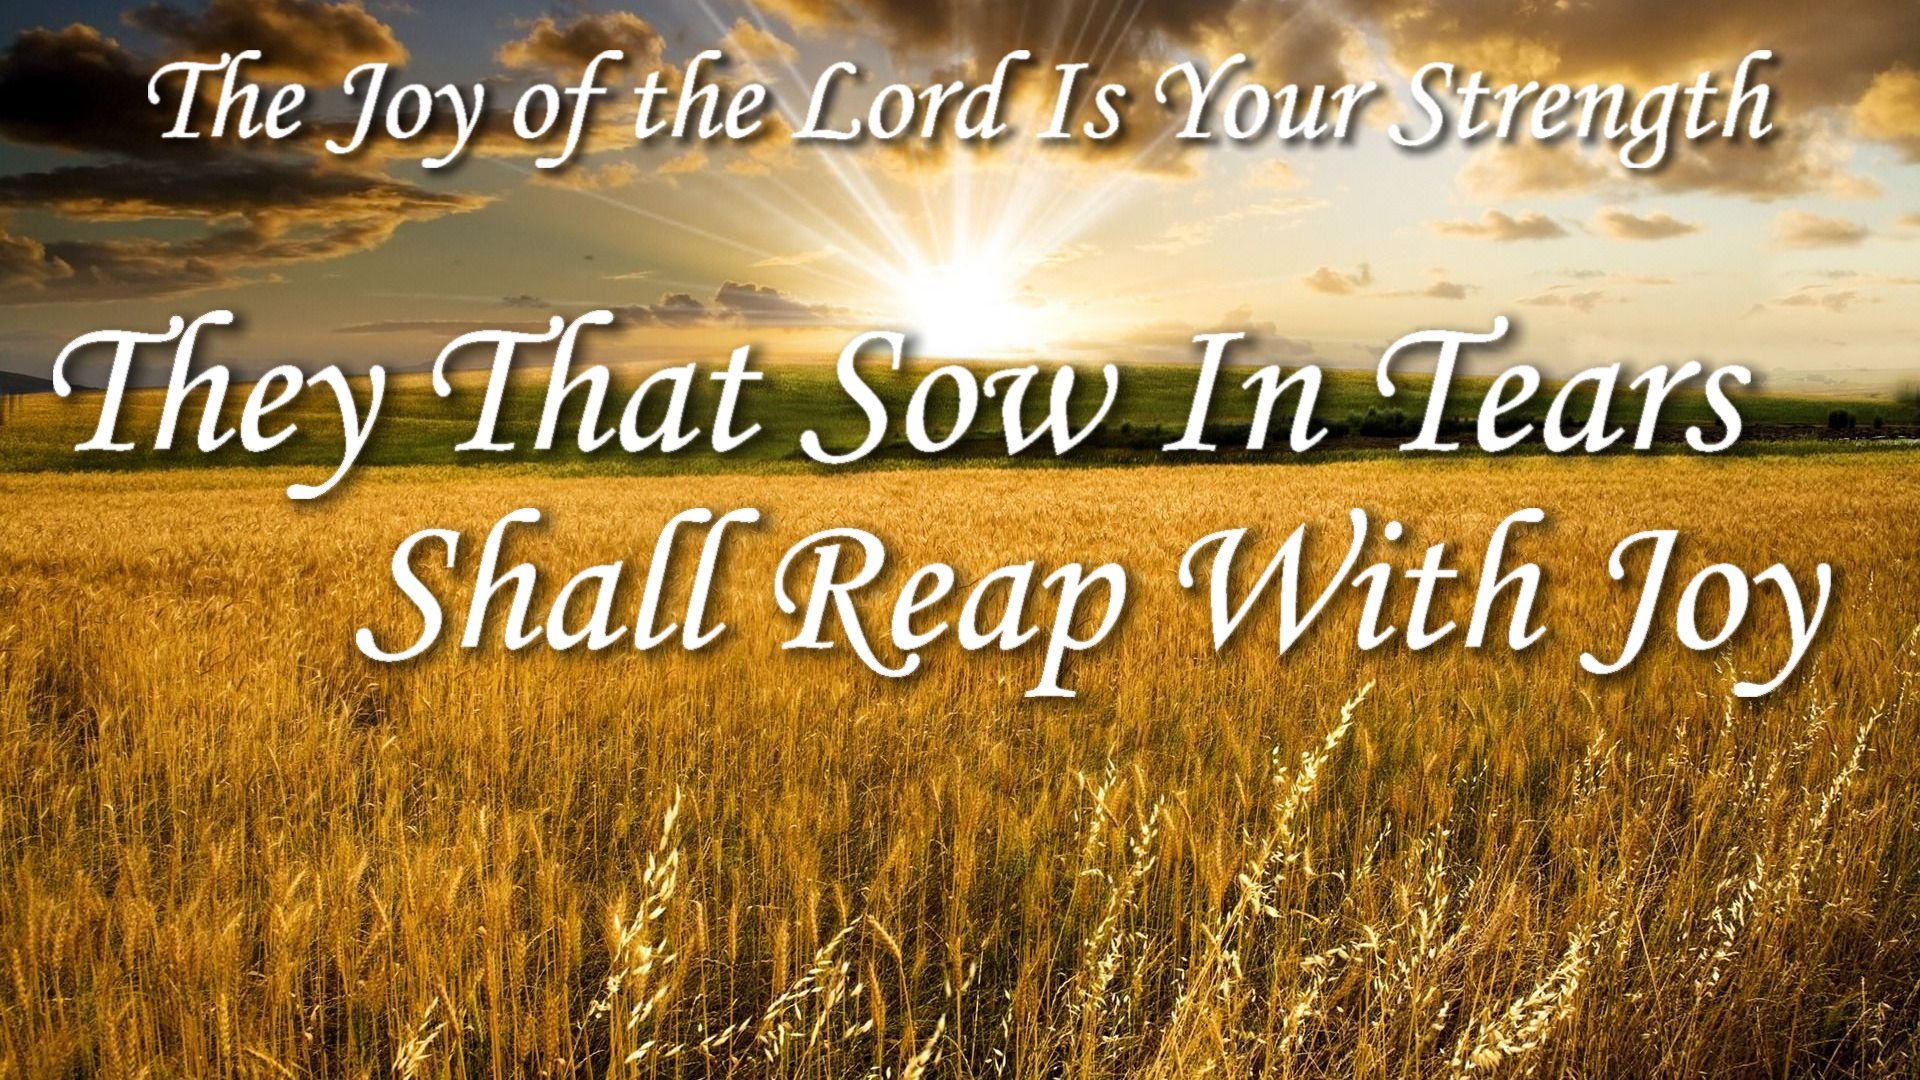 They That Sow in Tears Shall Reap with Joy